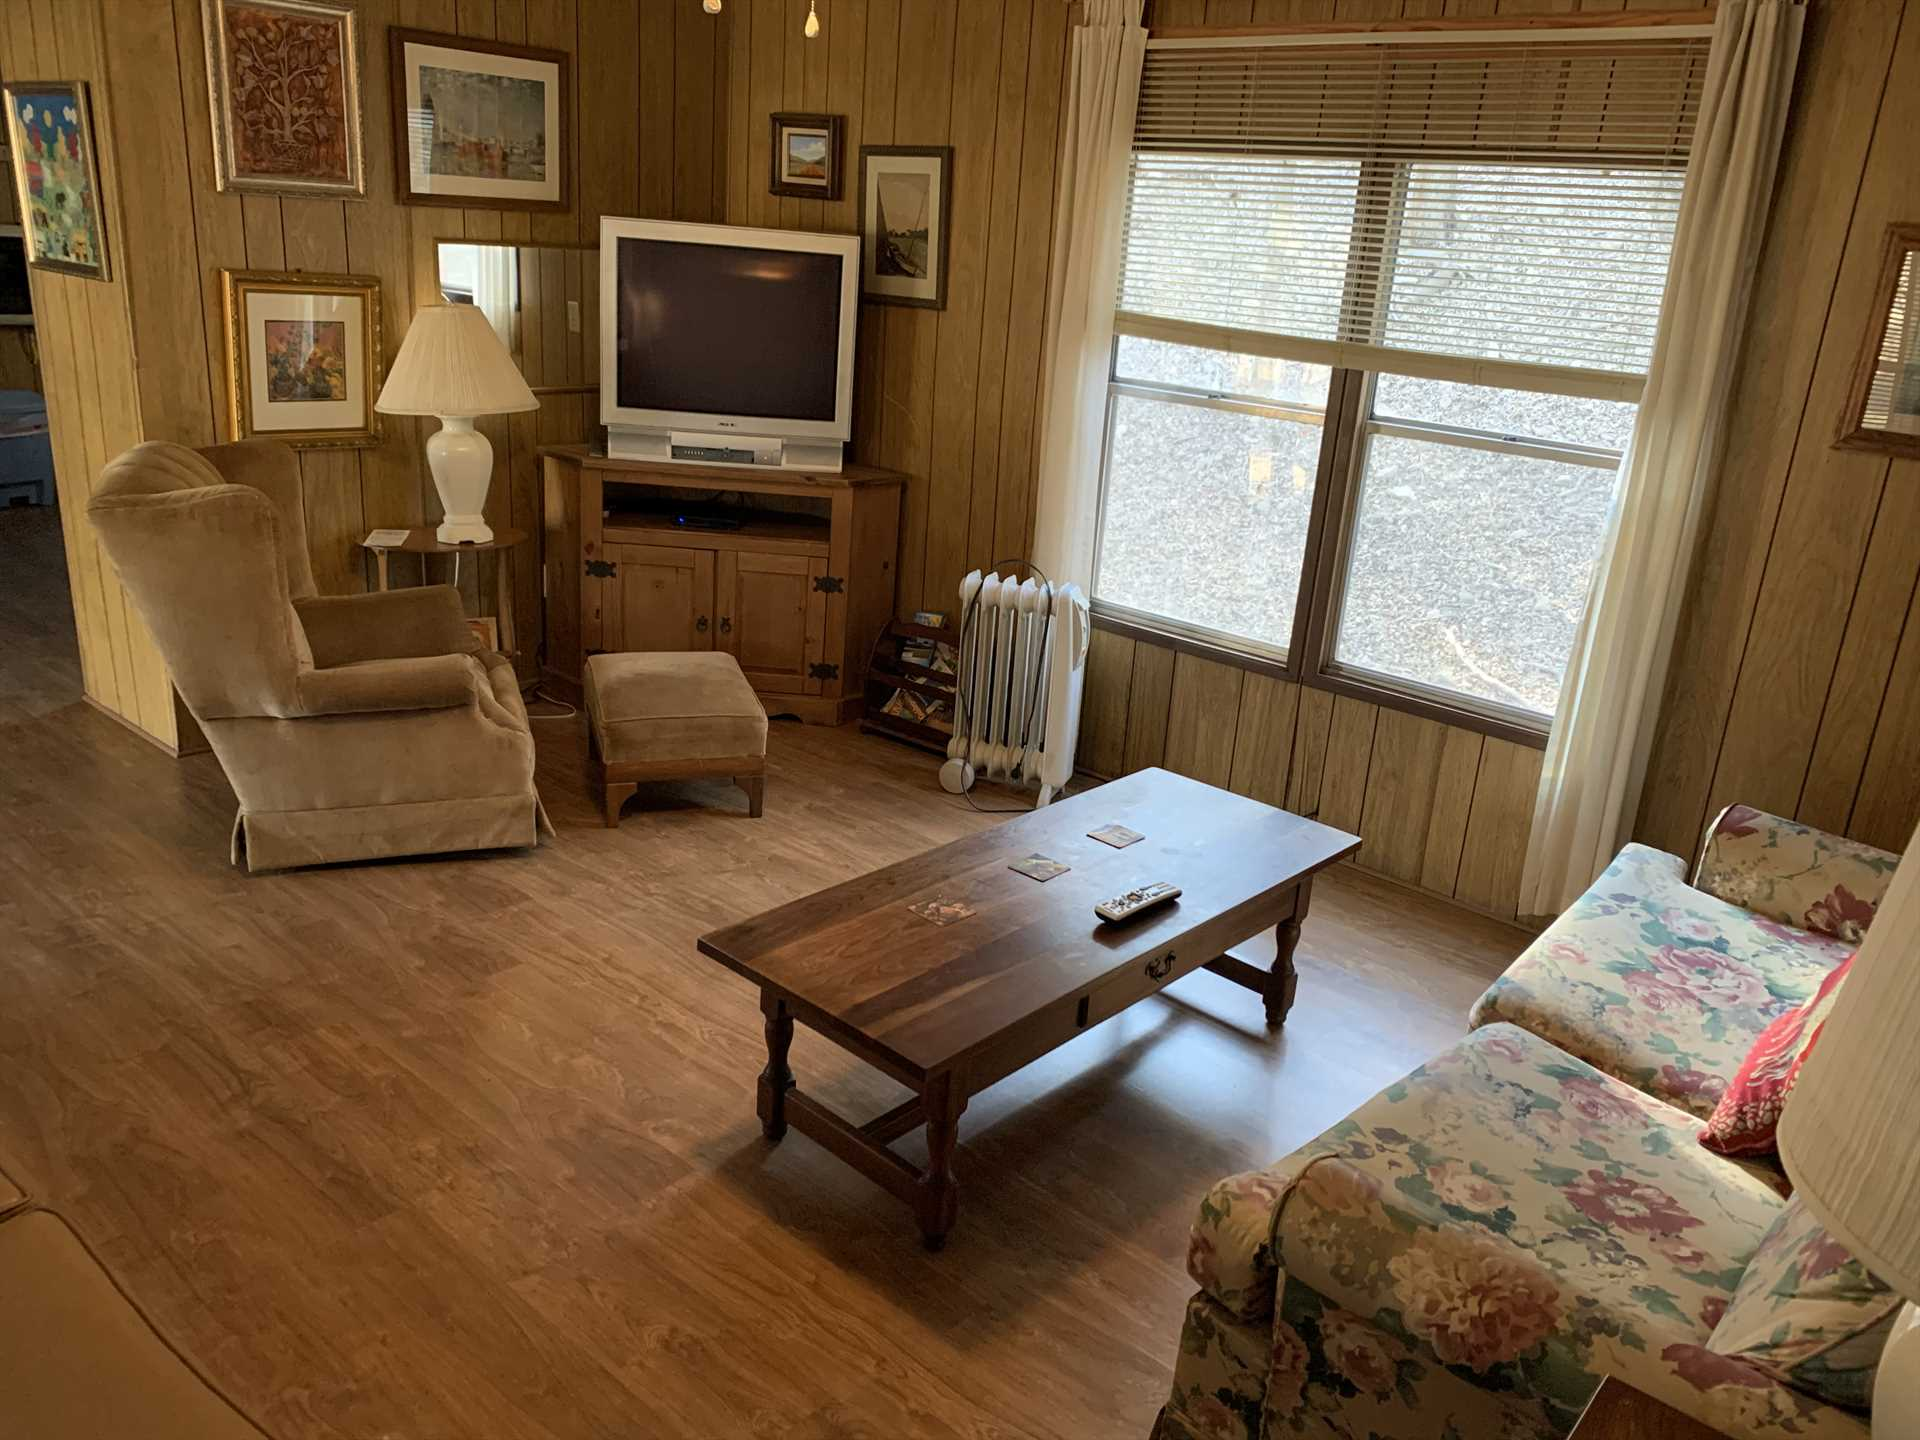 The TV in the living area includes satellite service and a DVD player for your entertainment!